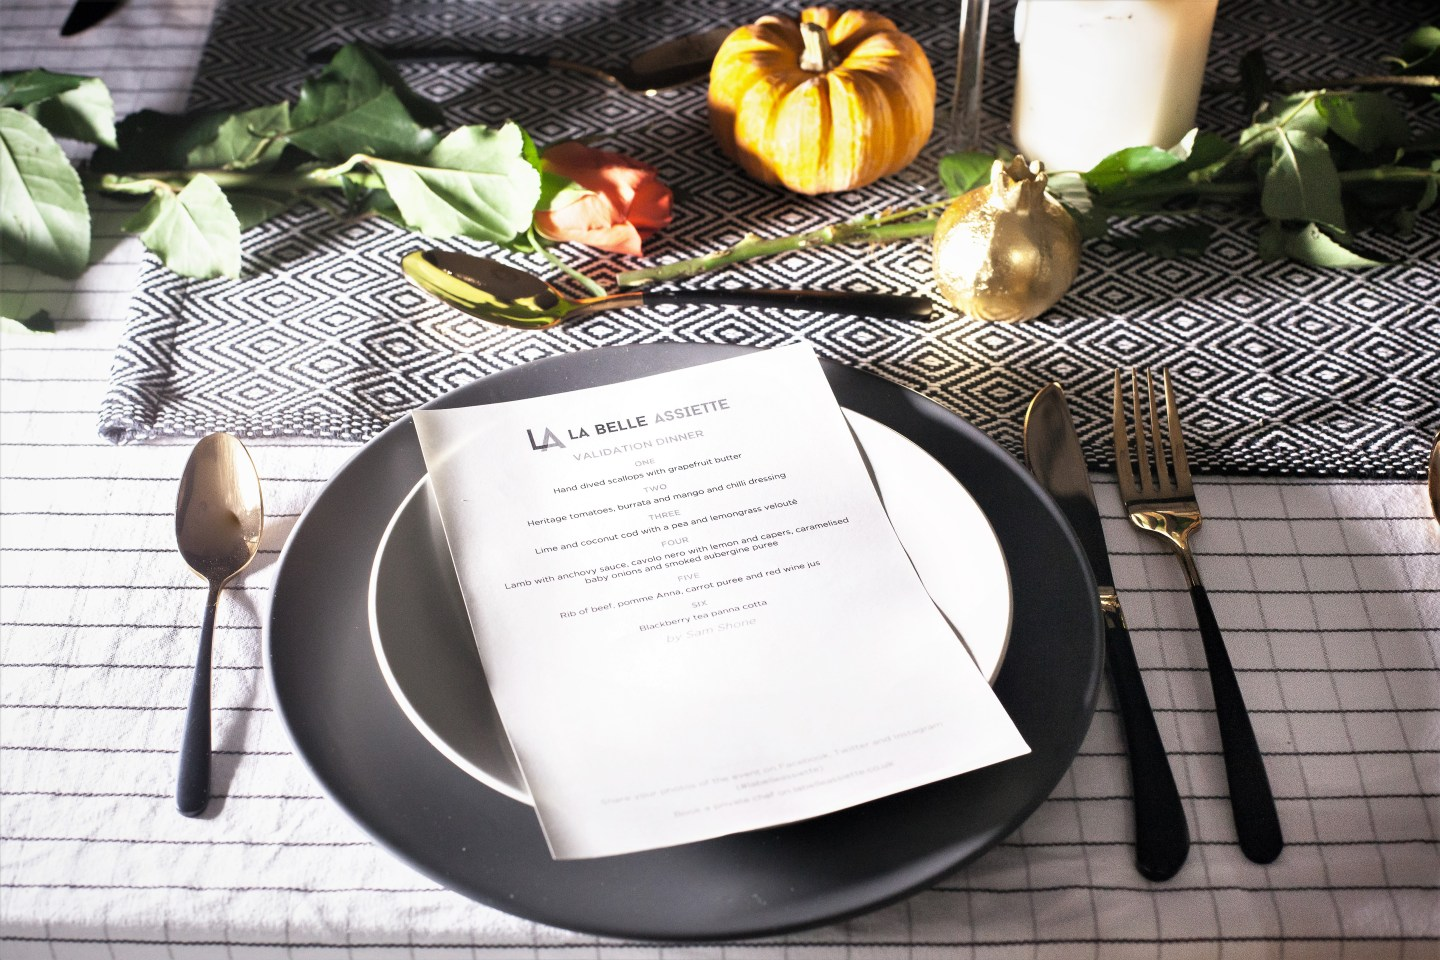 La Belle Assiette Menu placed on top of a grey plate